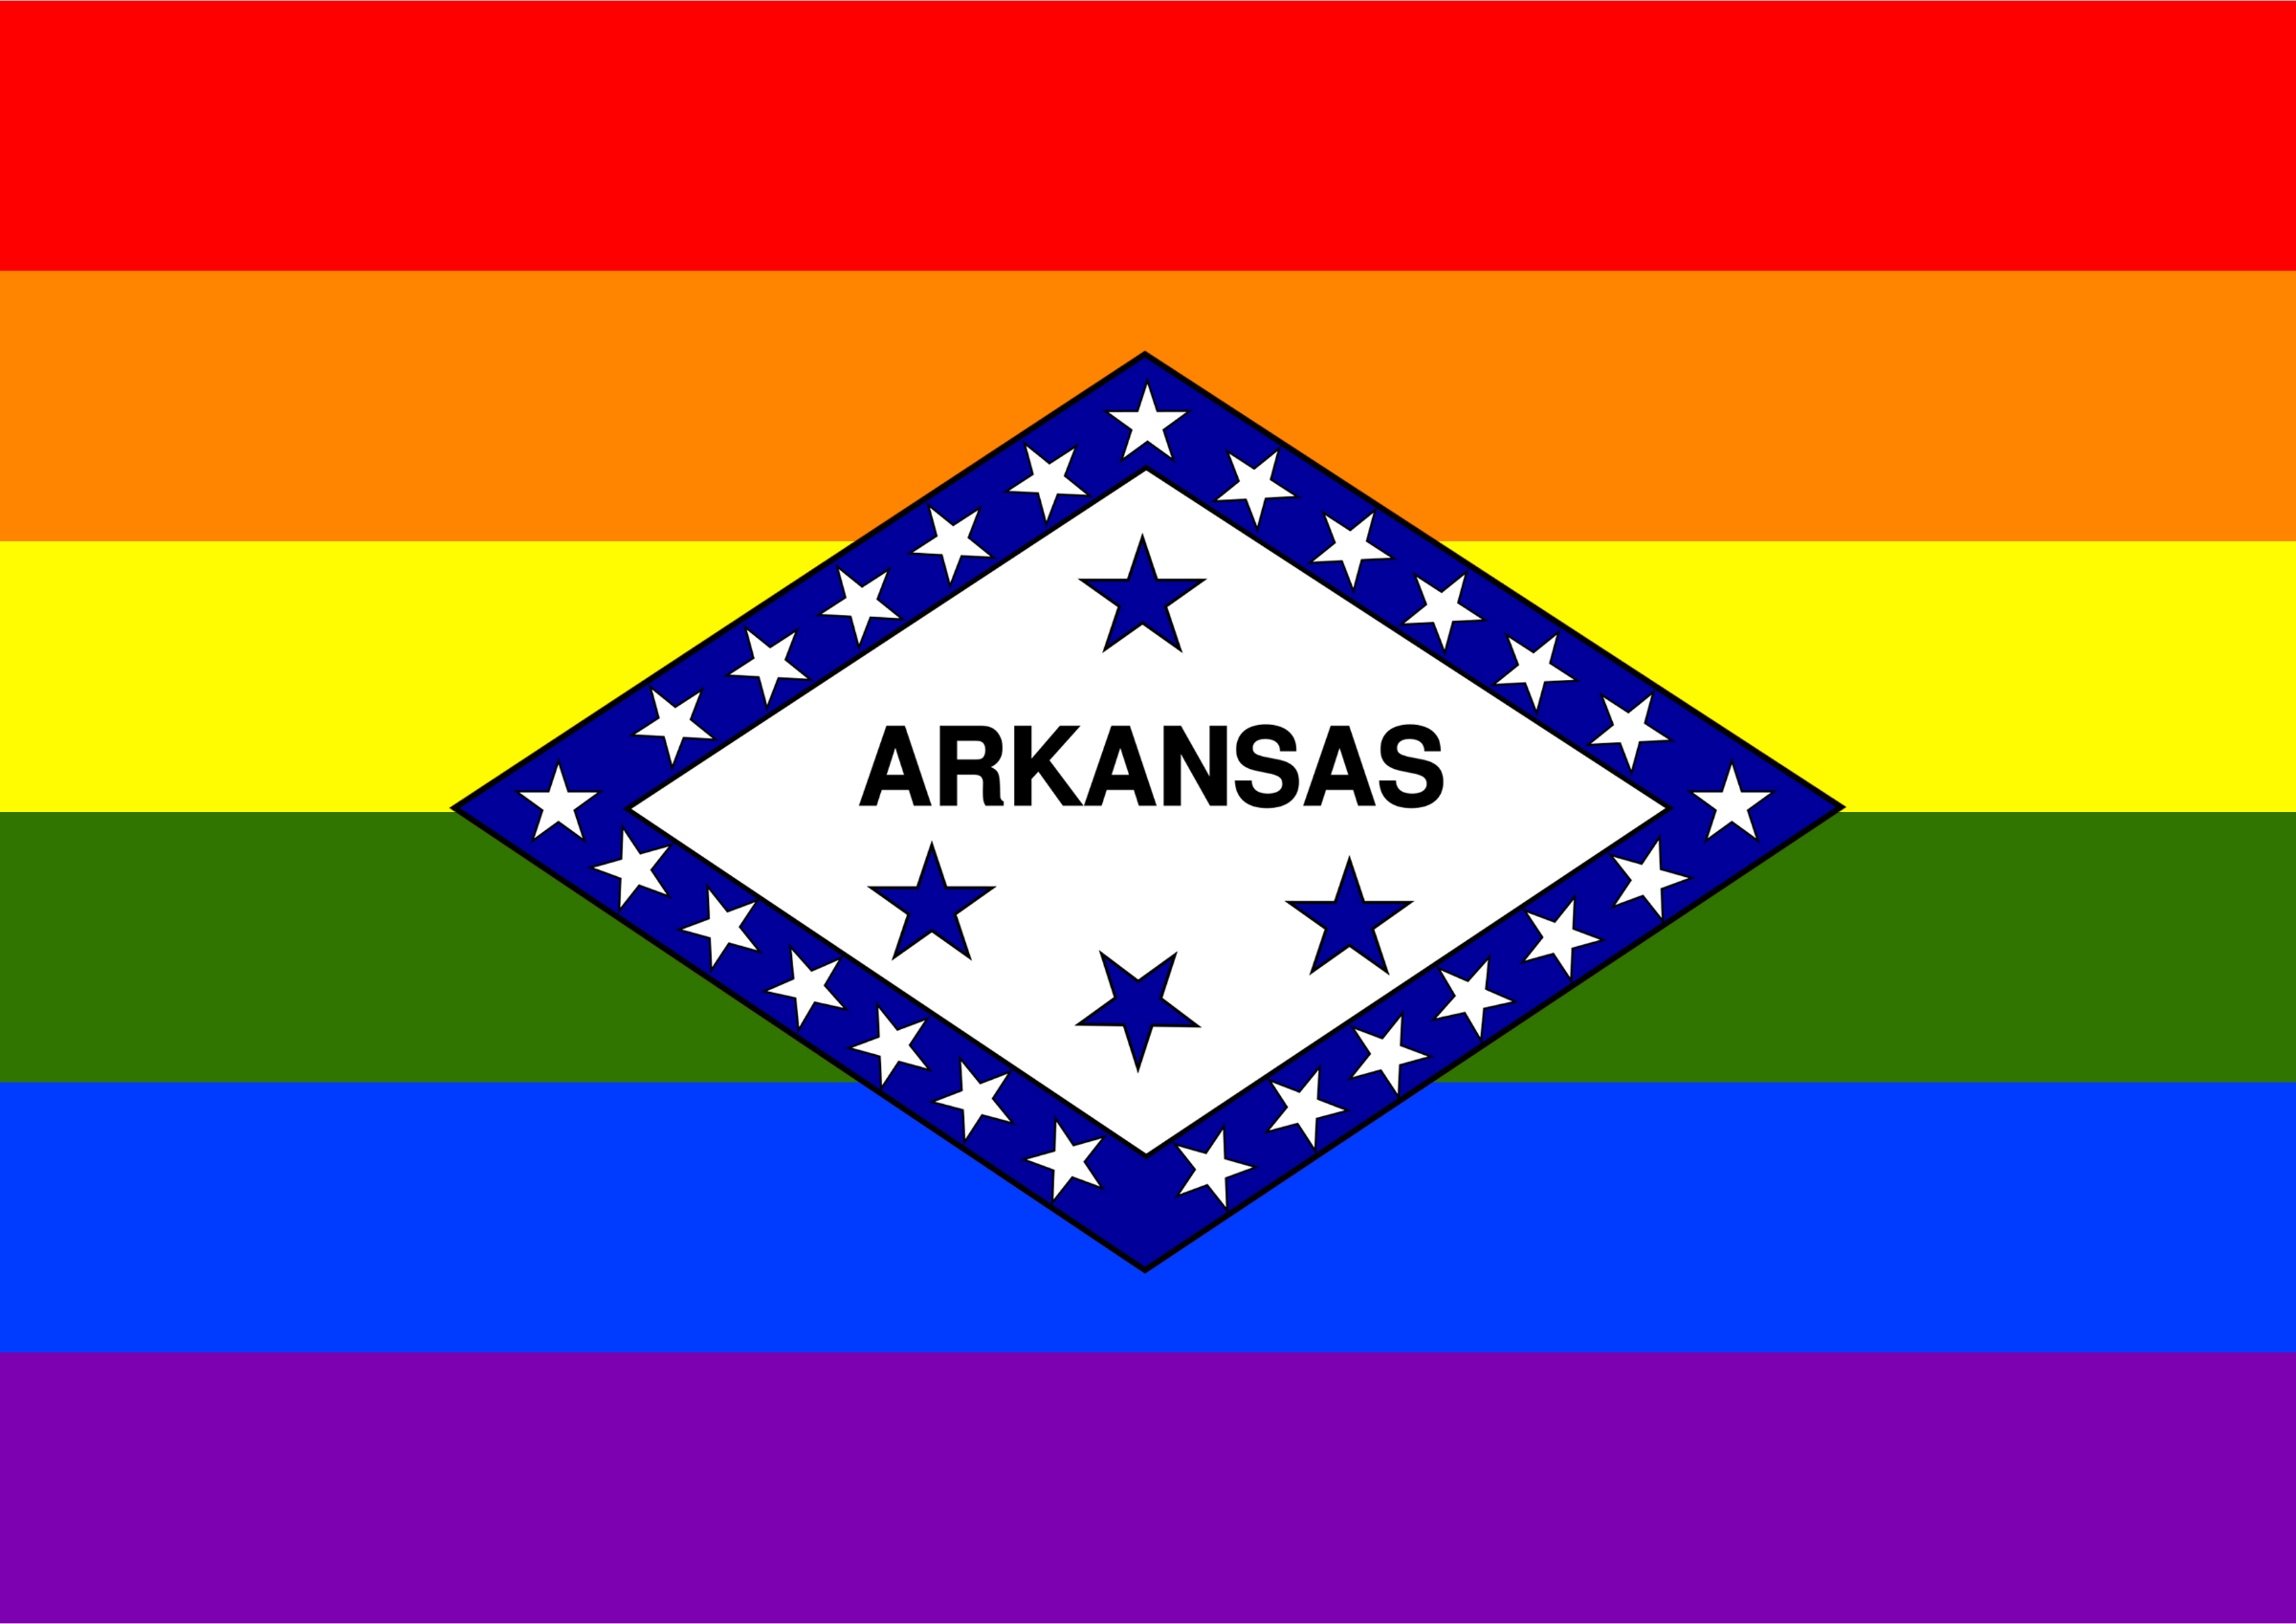 Rainbow Flag Arkansas 2 by Hirnlichtspiele